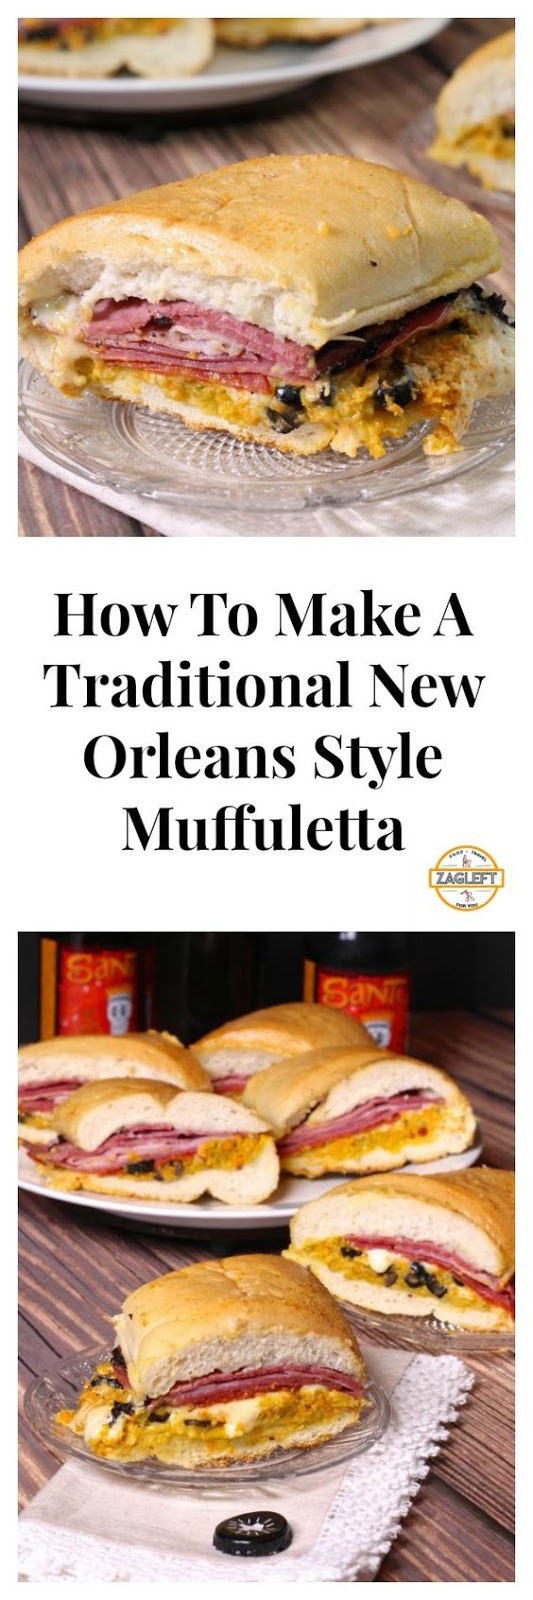 45 ways to make a burger you 39 ve never thought about for Authentic new orleans cuisine